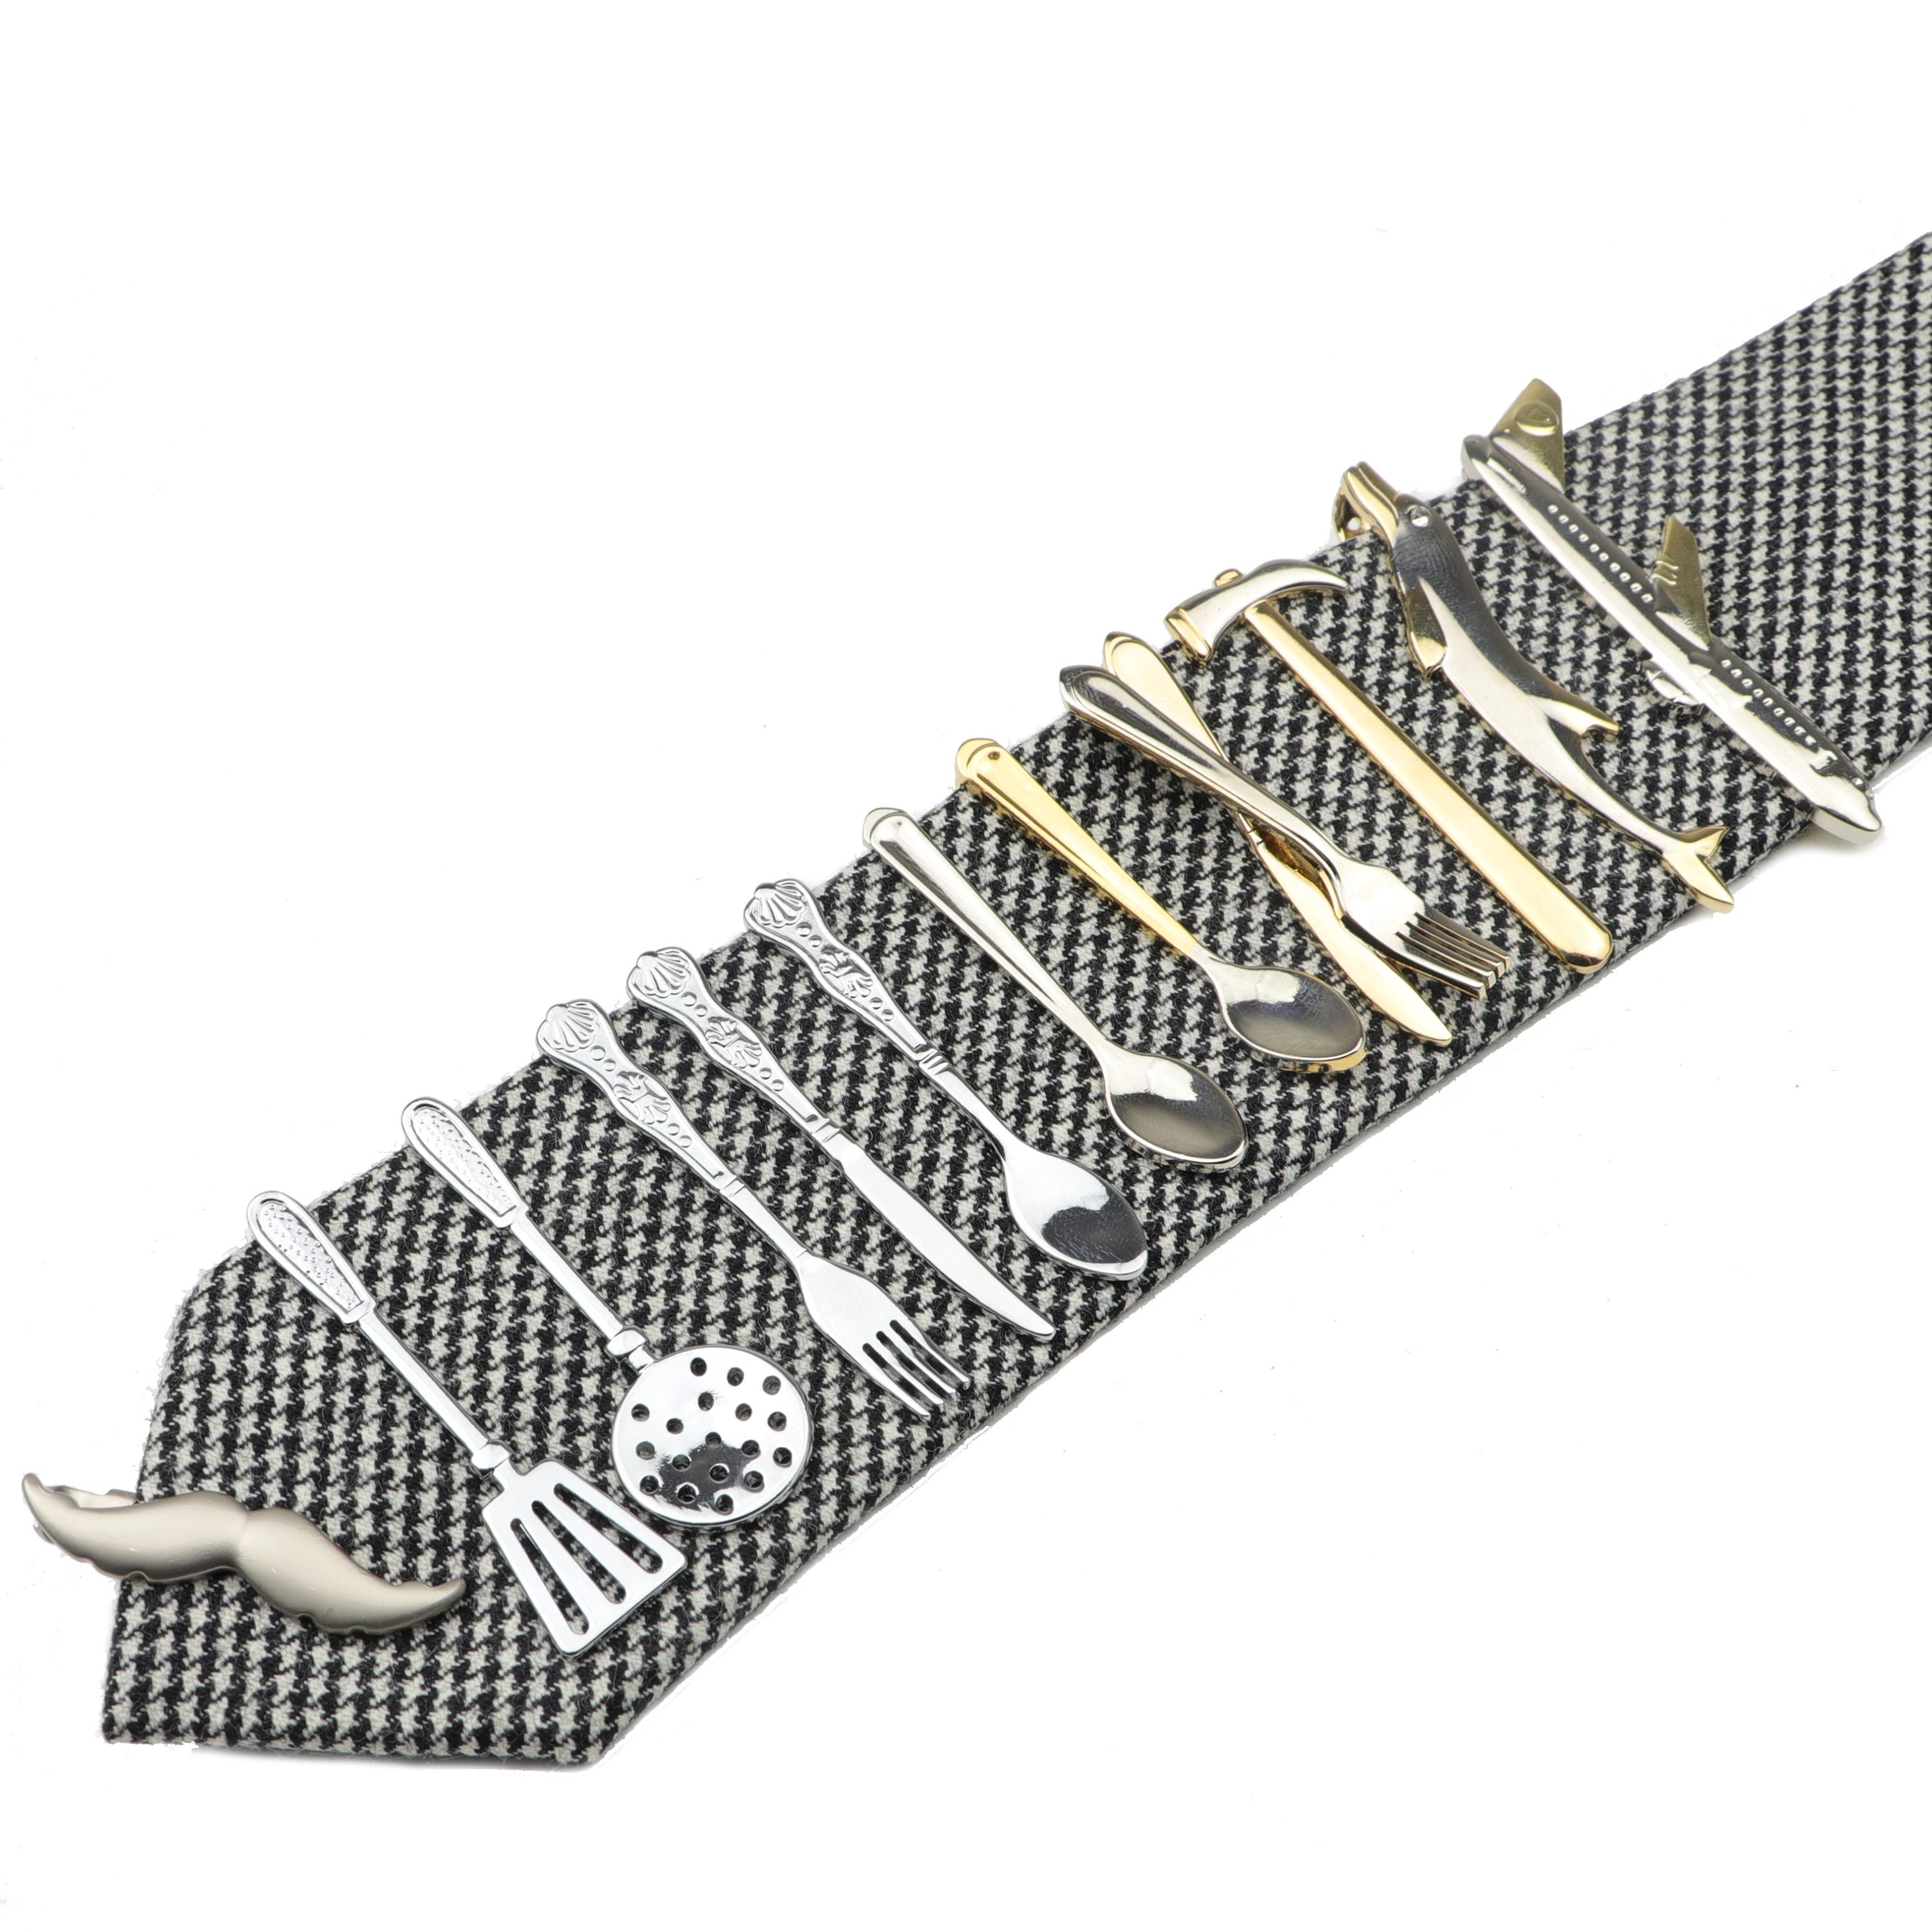 1 Piece Chrome Stainless Glasses Car Airplane Fork Spoon Shape Metal Tie Clip for Men Necktie Clips Pin For Mens Gift(China)